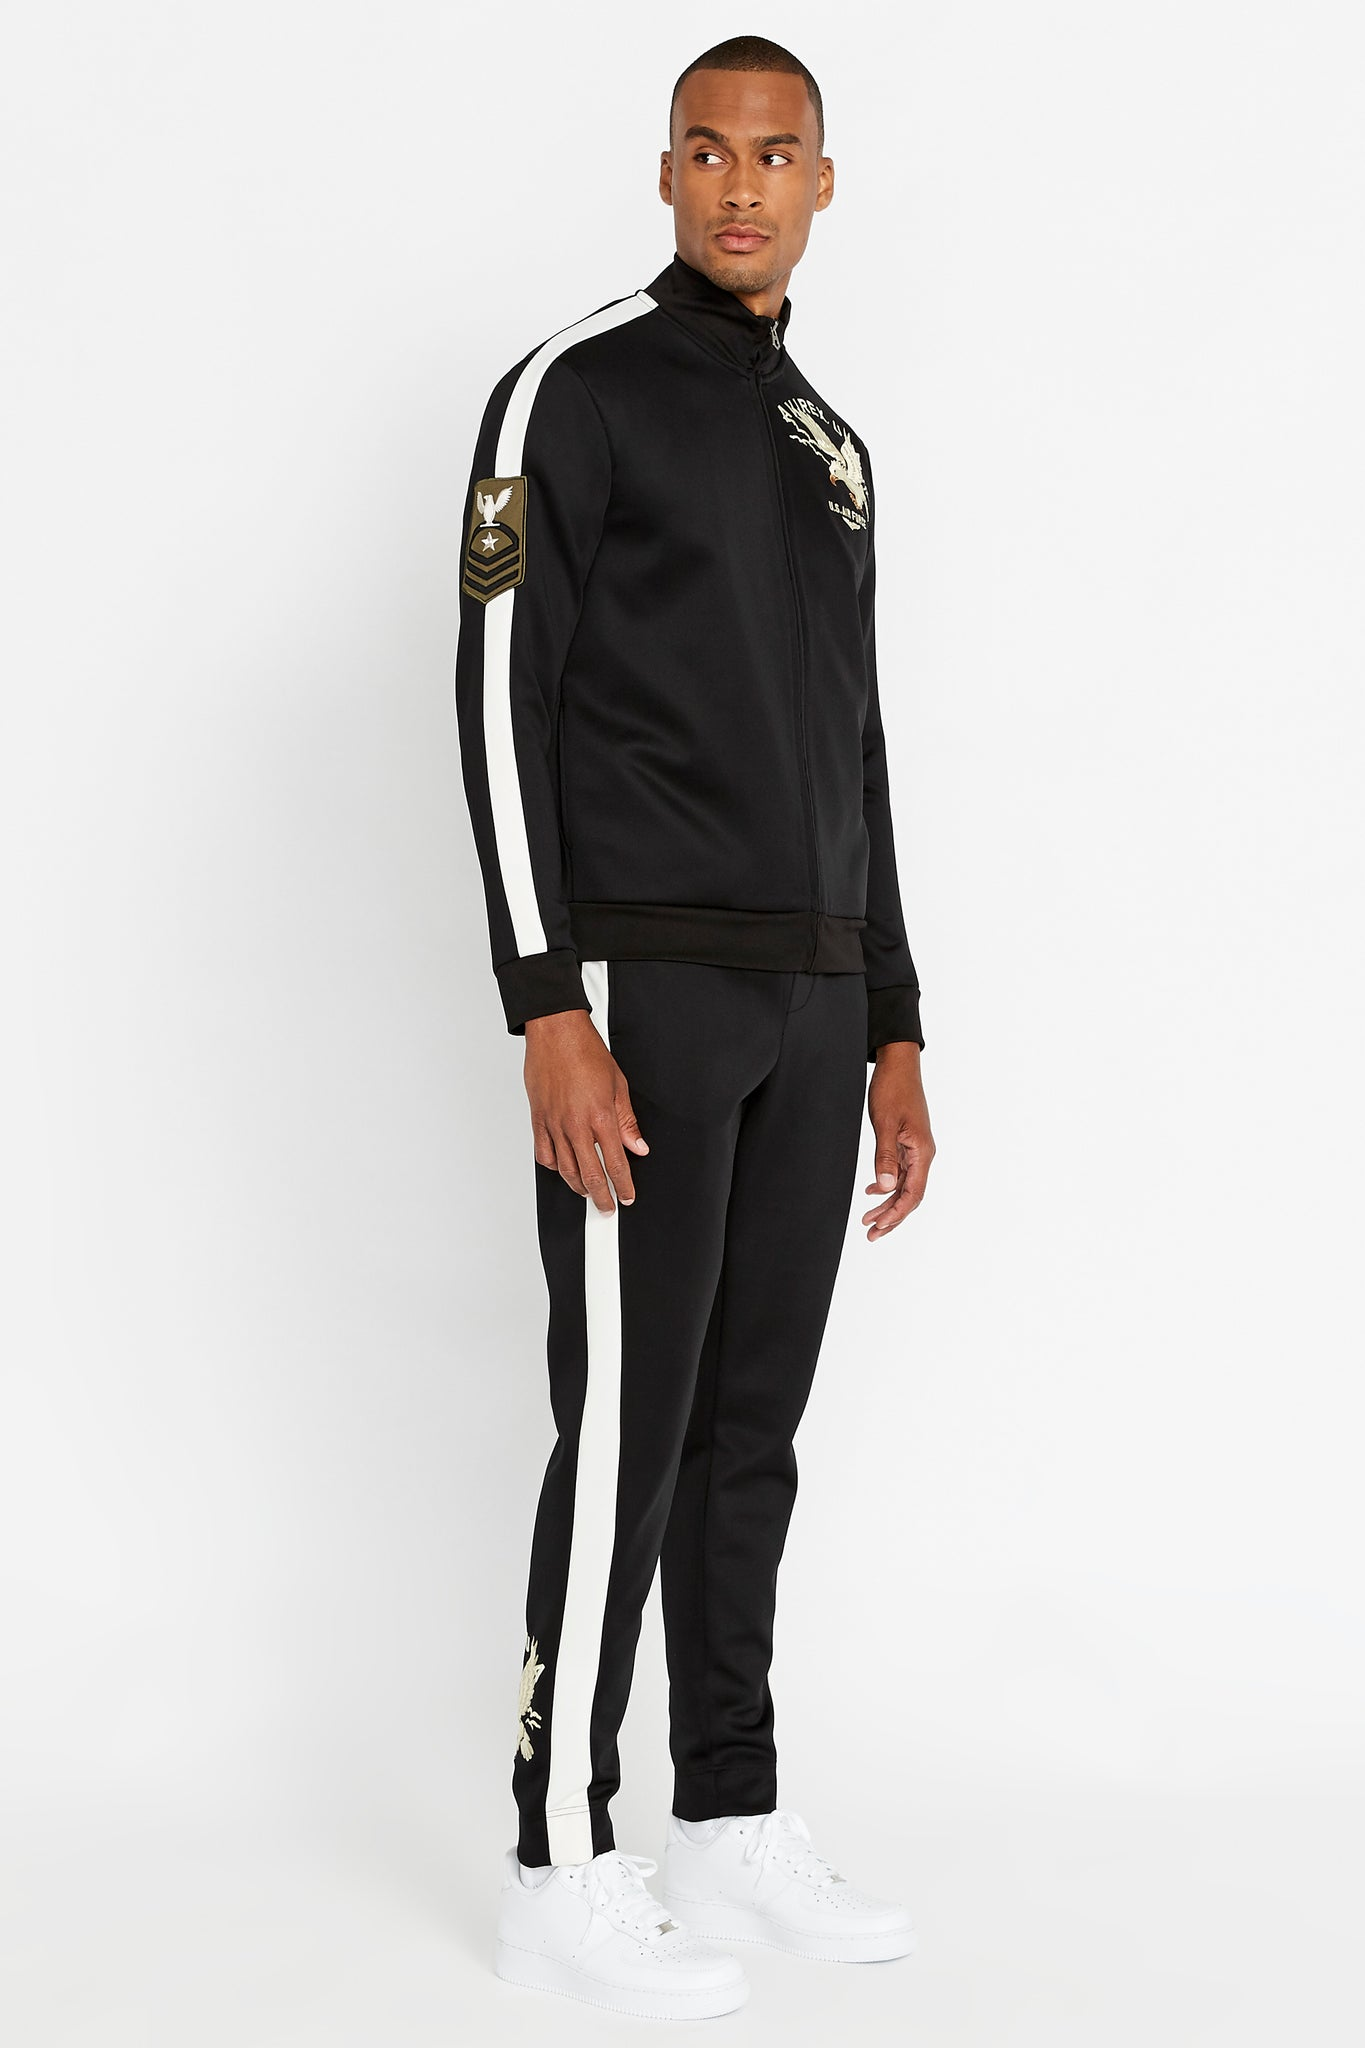 Full side view of men wearing a fully zipped black jet track jacket with eagle embroidery on the chest and bold white side strip on the right sleeve and black pants